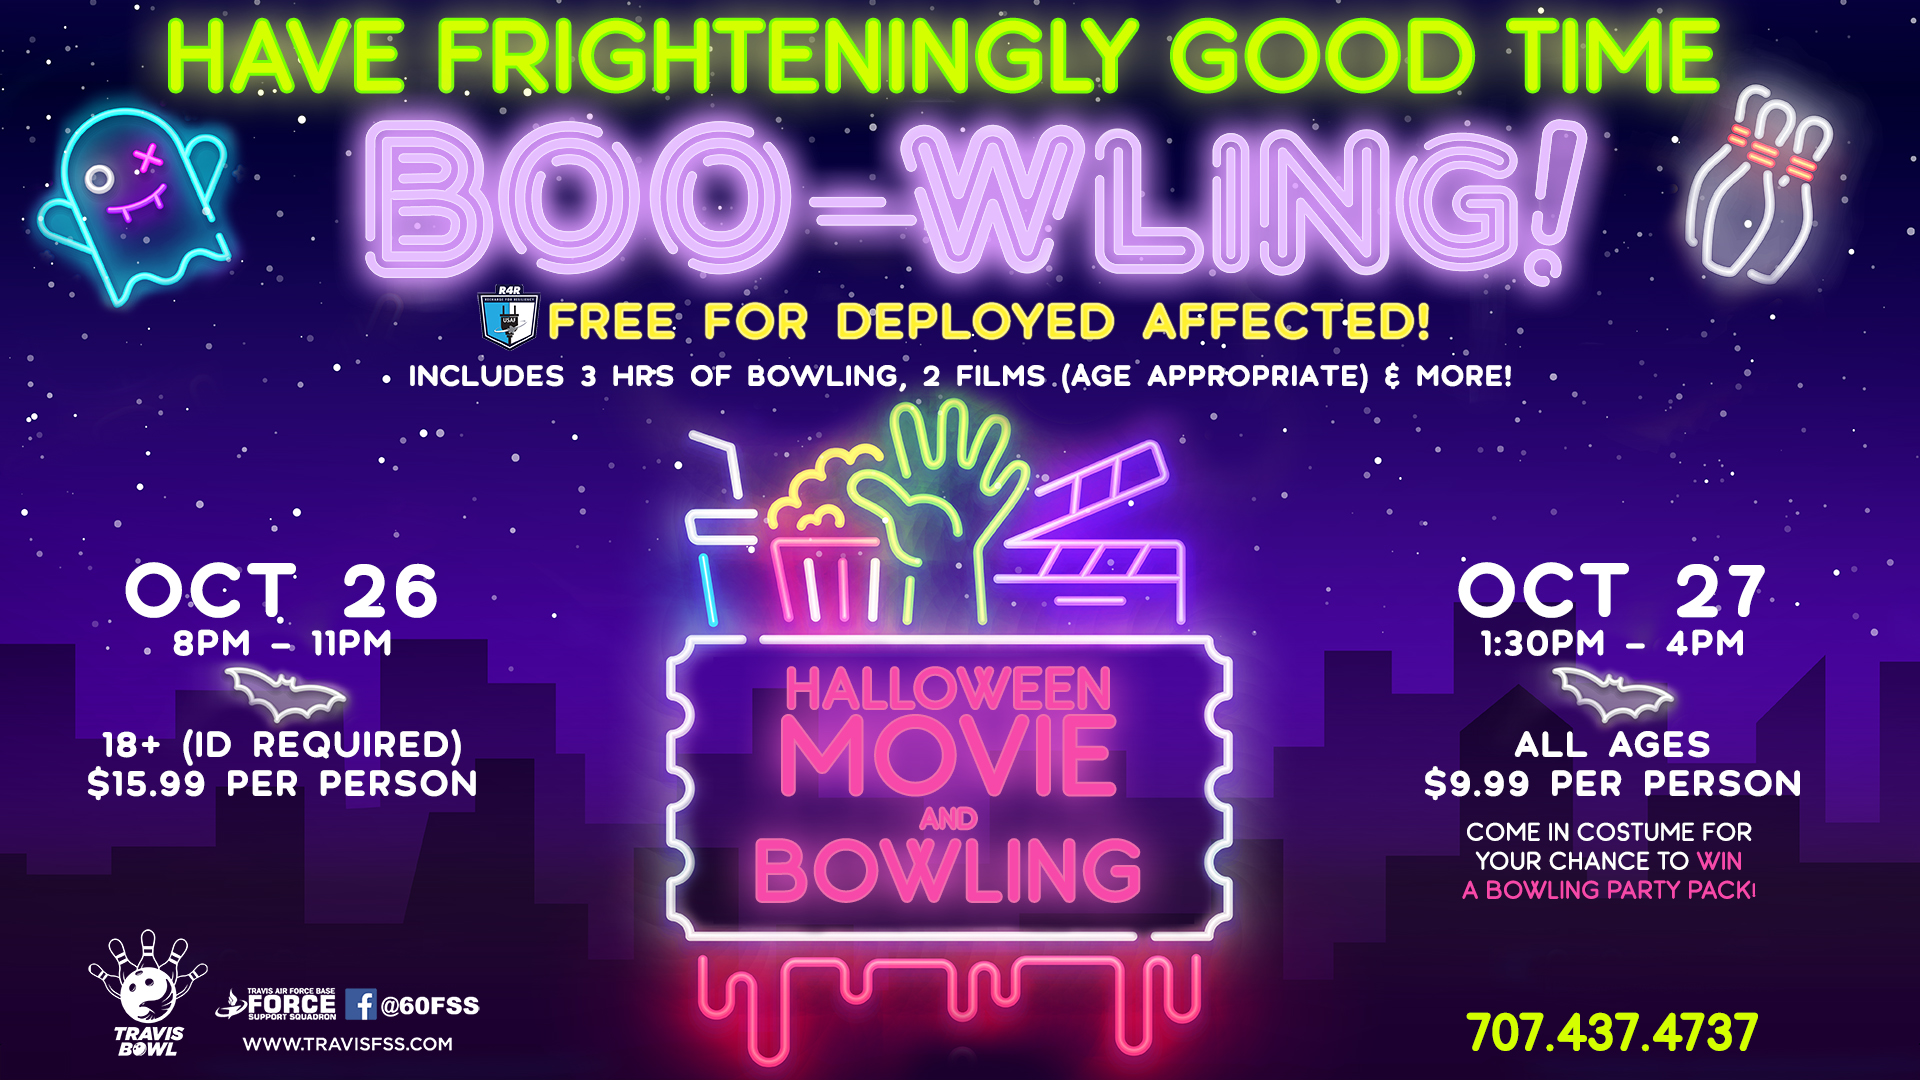 Halloween Movie And Bowling At Travis Bowl